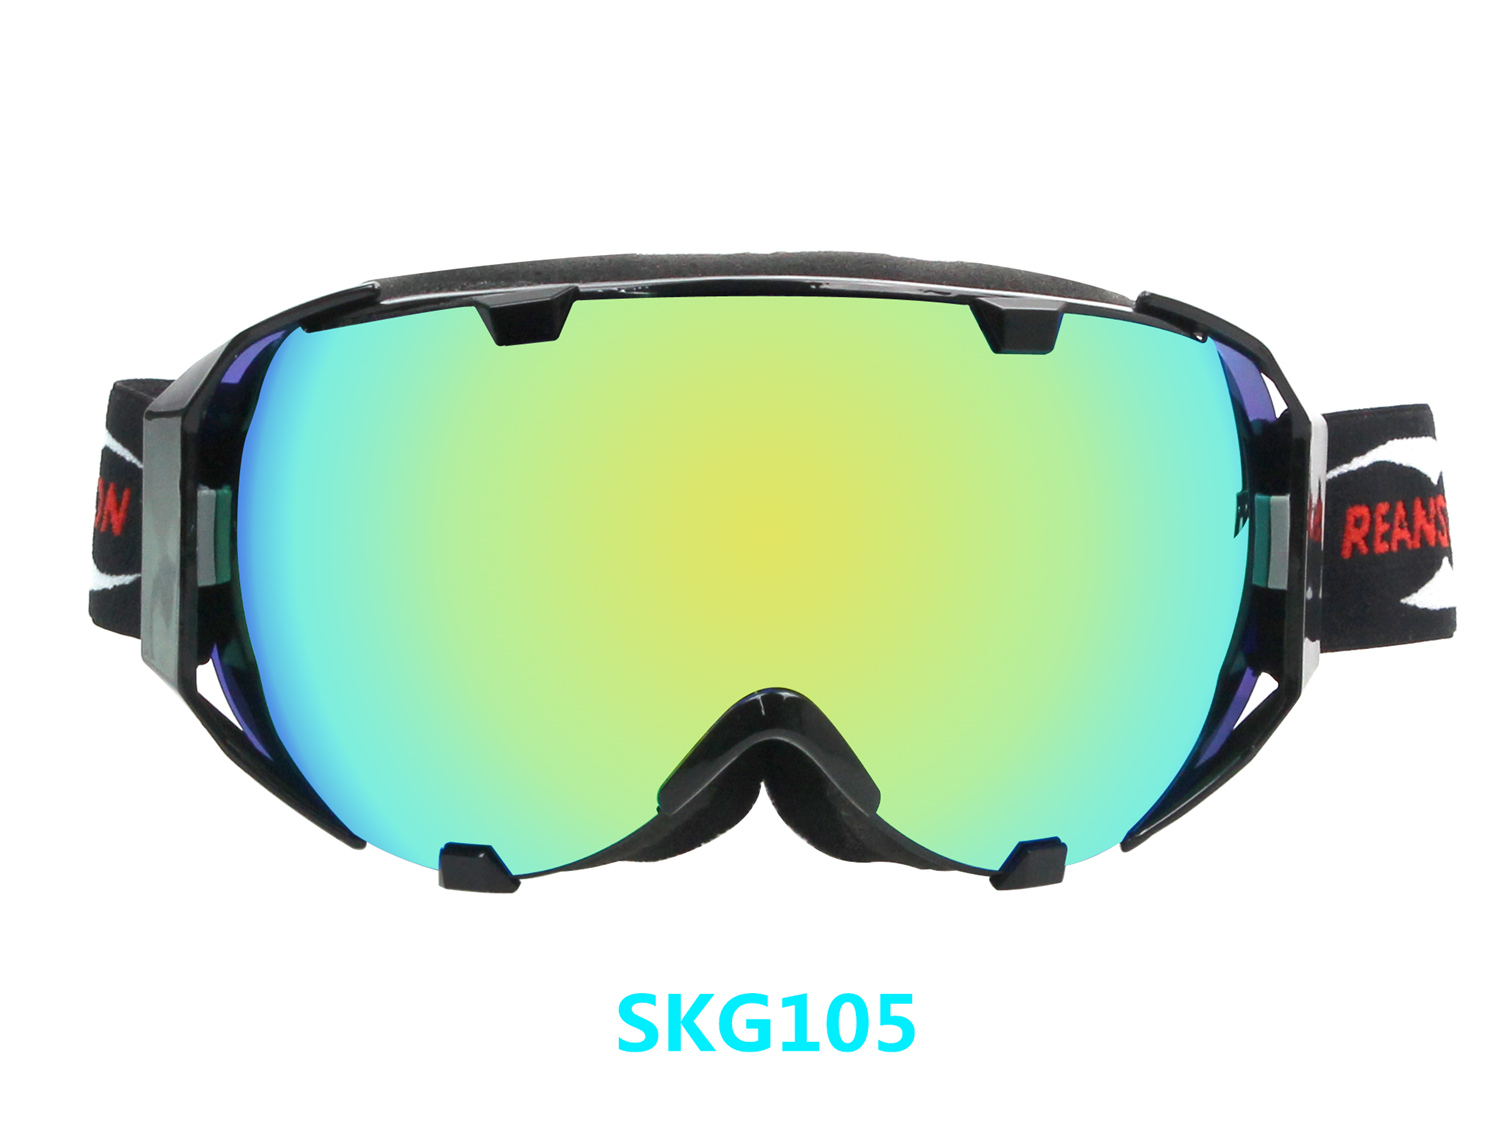 Latest Design Frameless Anti-fog Mirrored Skiing Goggles